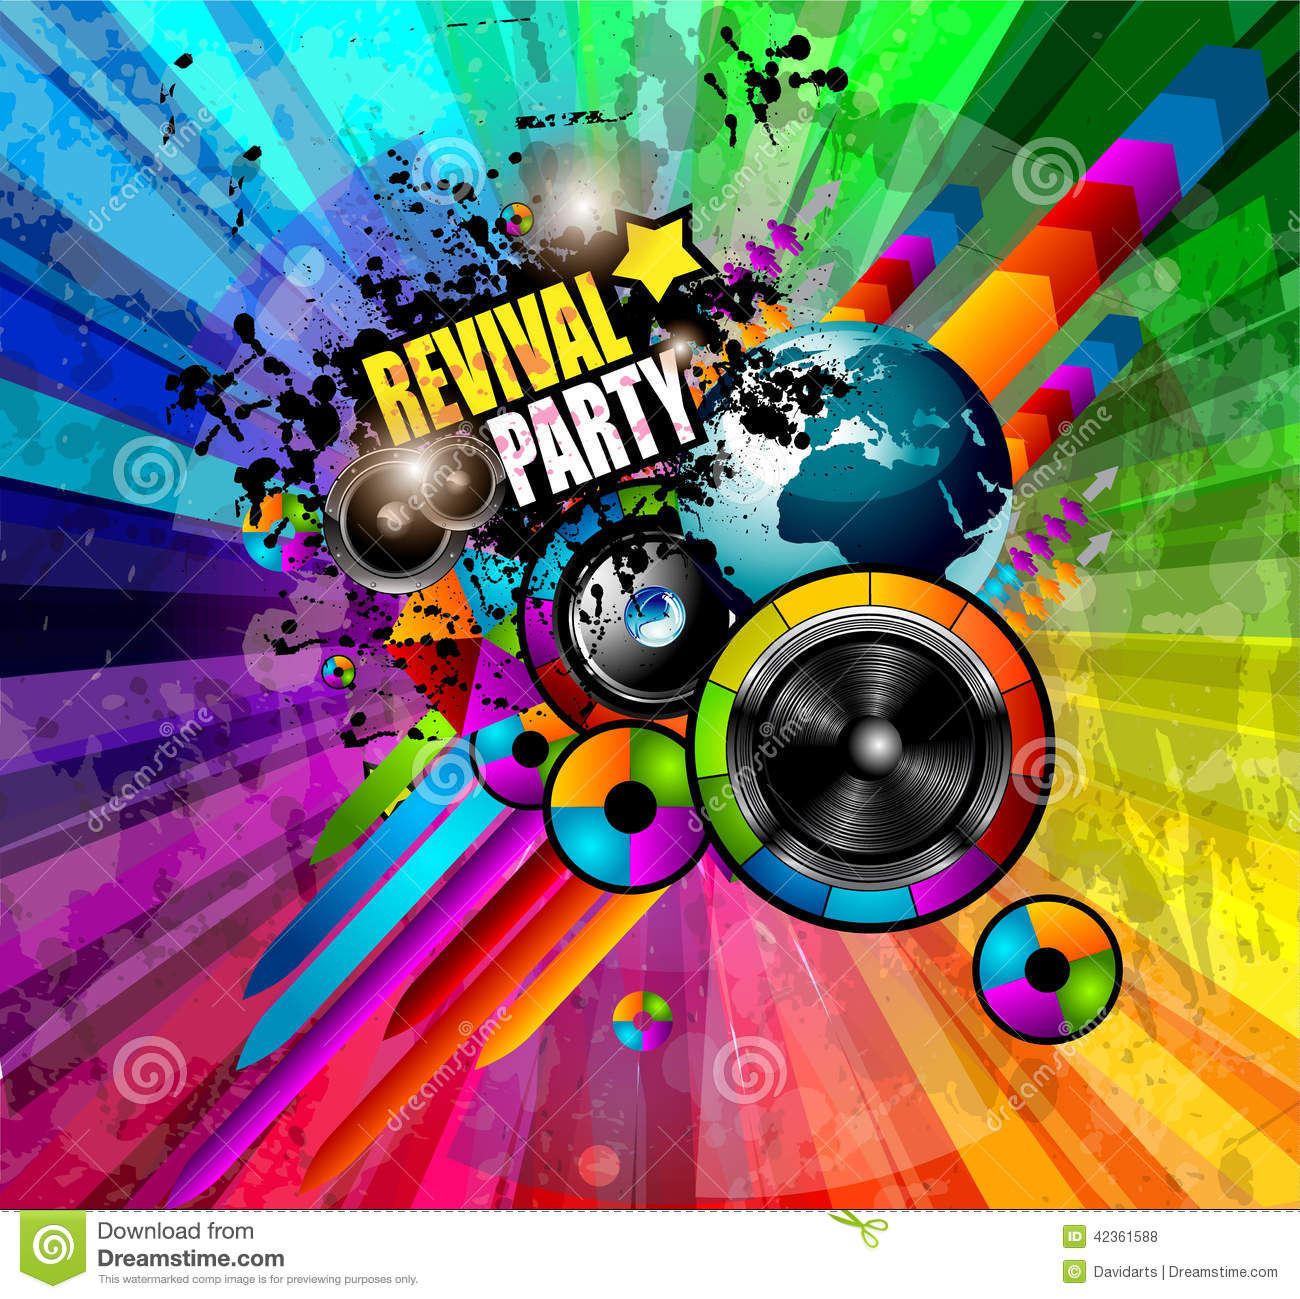 Grunge Girl Wallpaper Party Club Flyer For Music Event With Explosion Of Colors